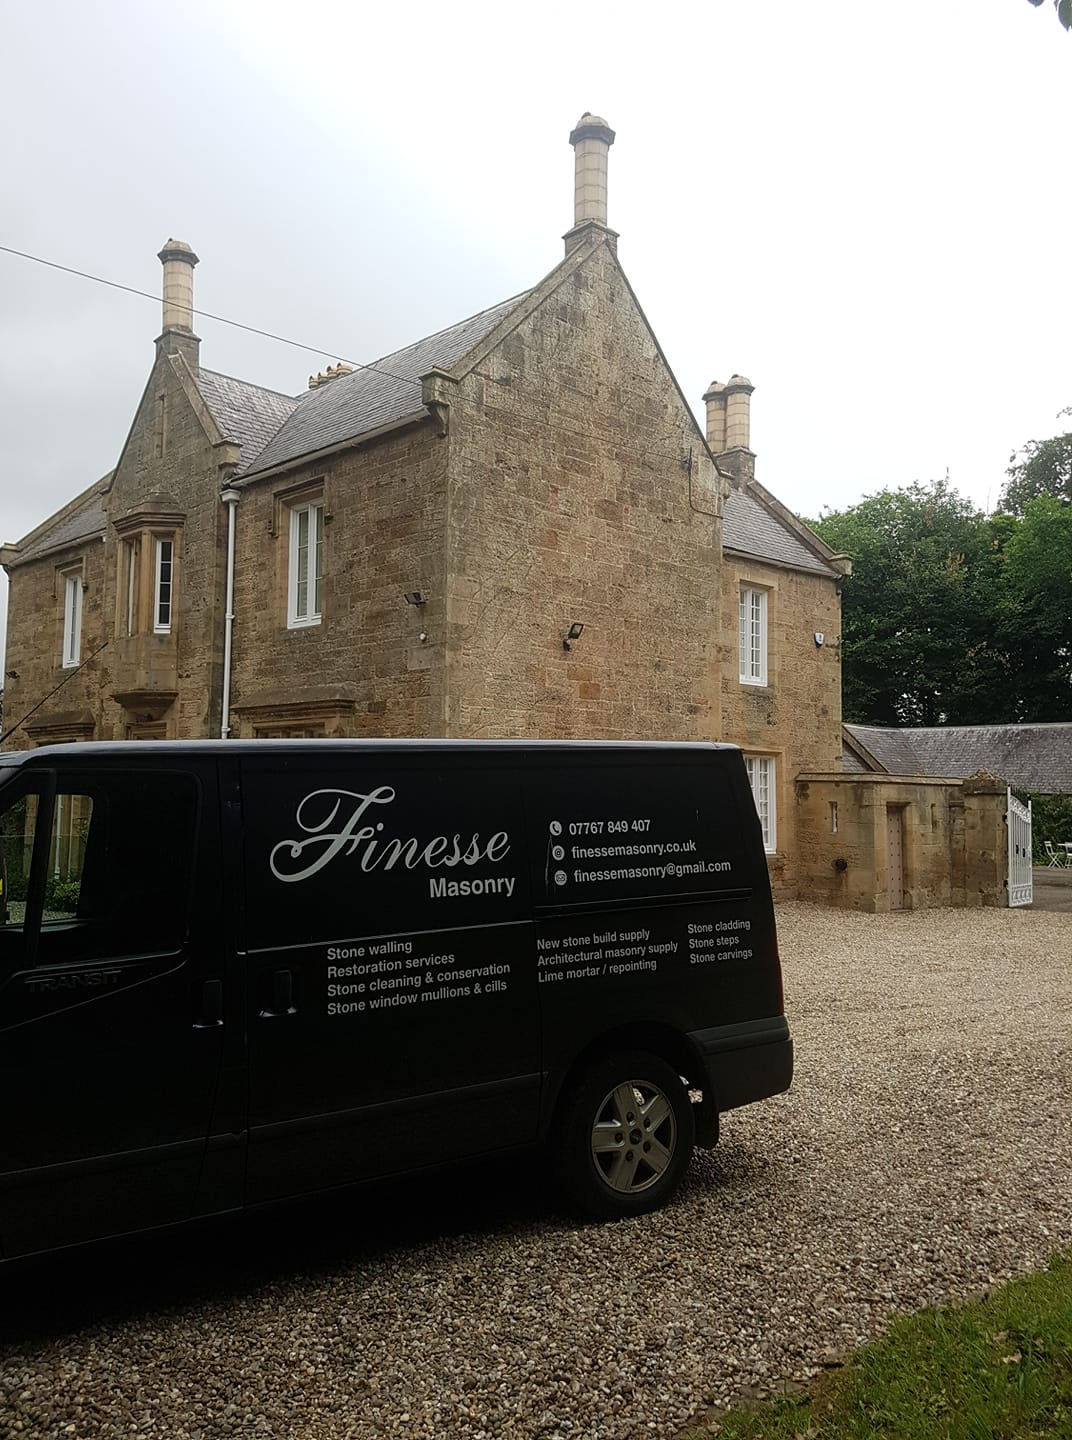 All your stone masonry needs is here at finesse masonry serving the northwest with its stone masonry needs. North Wales, North West, Wirral, Liverpool & Cheshire UK